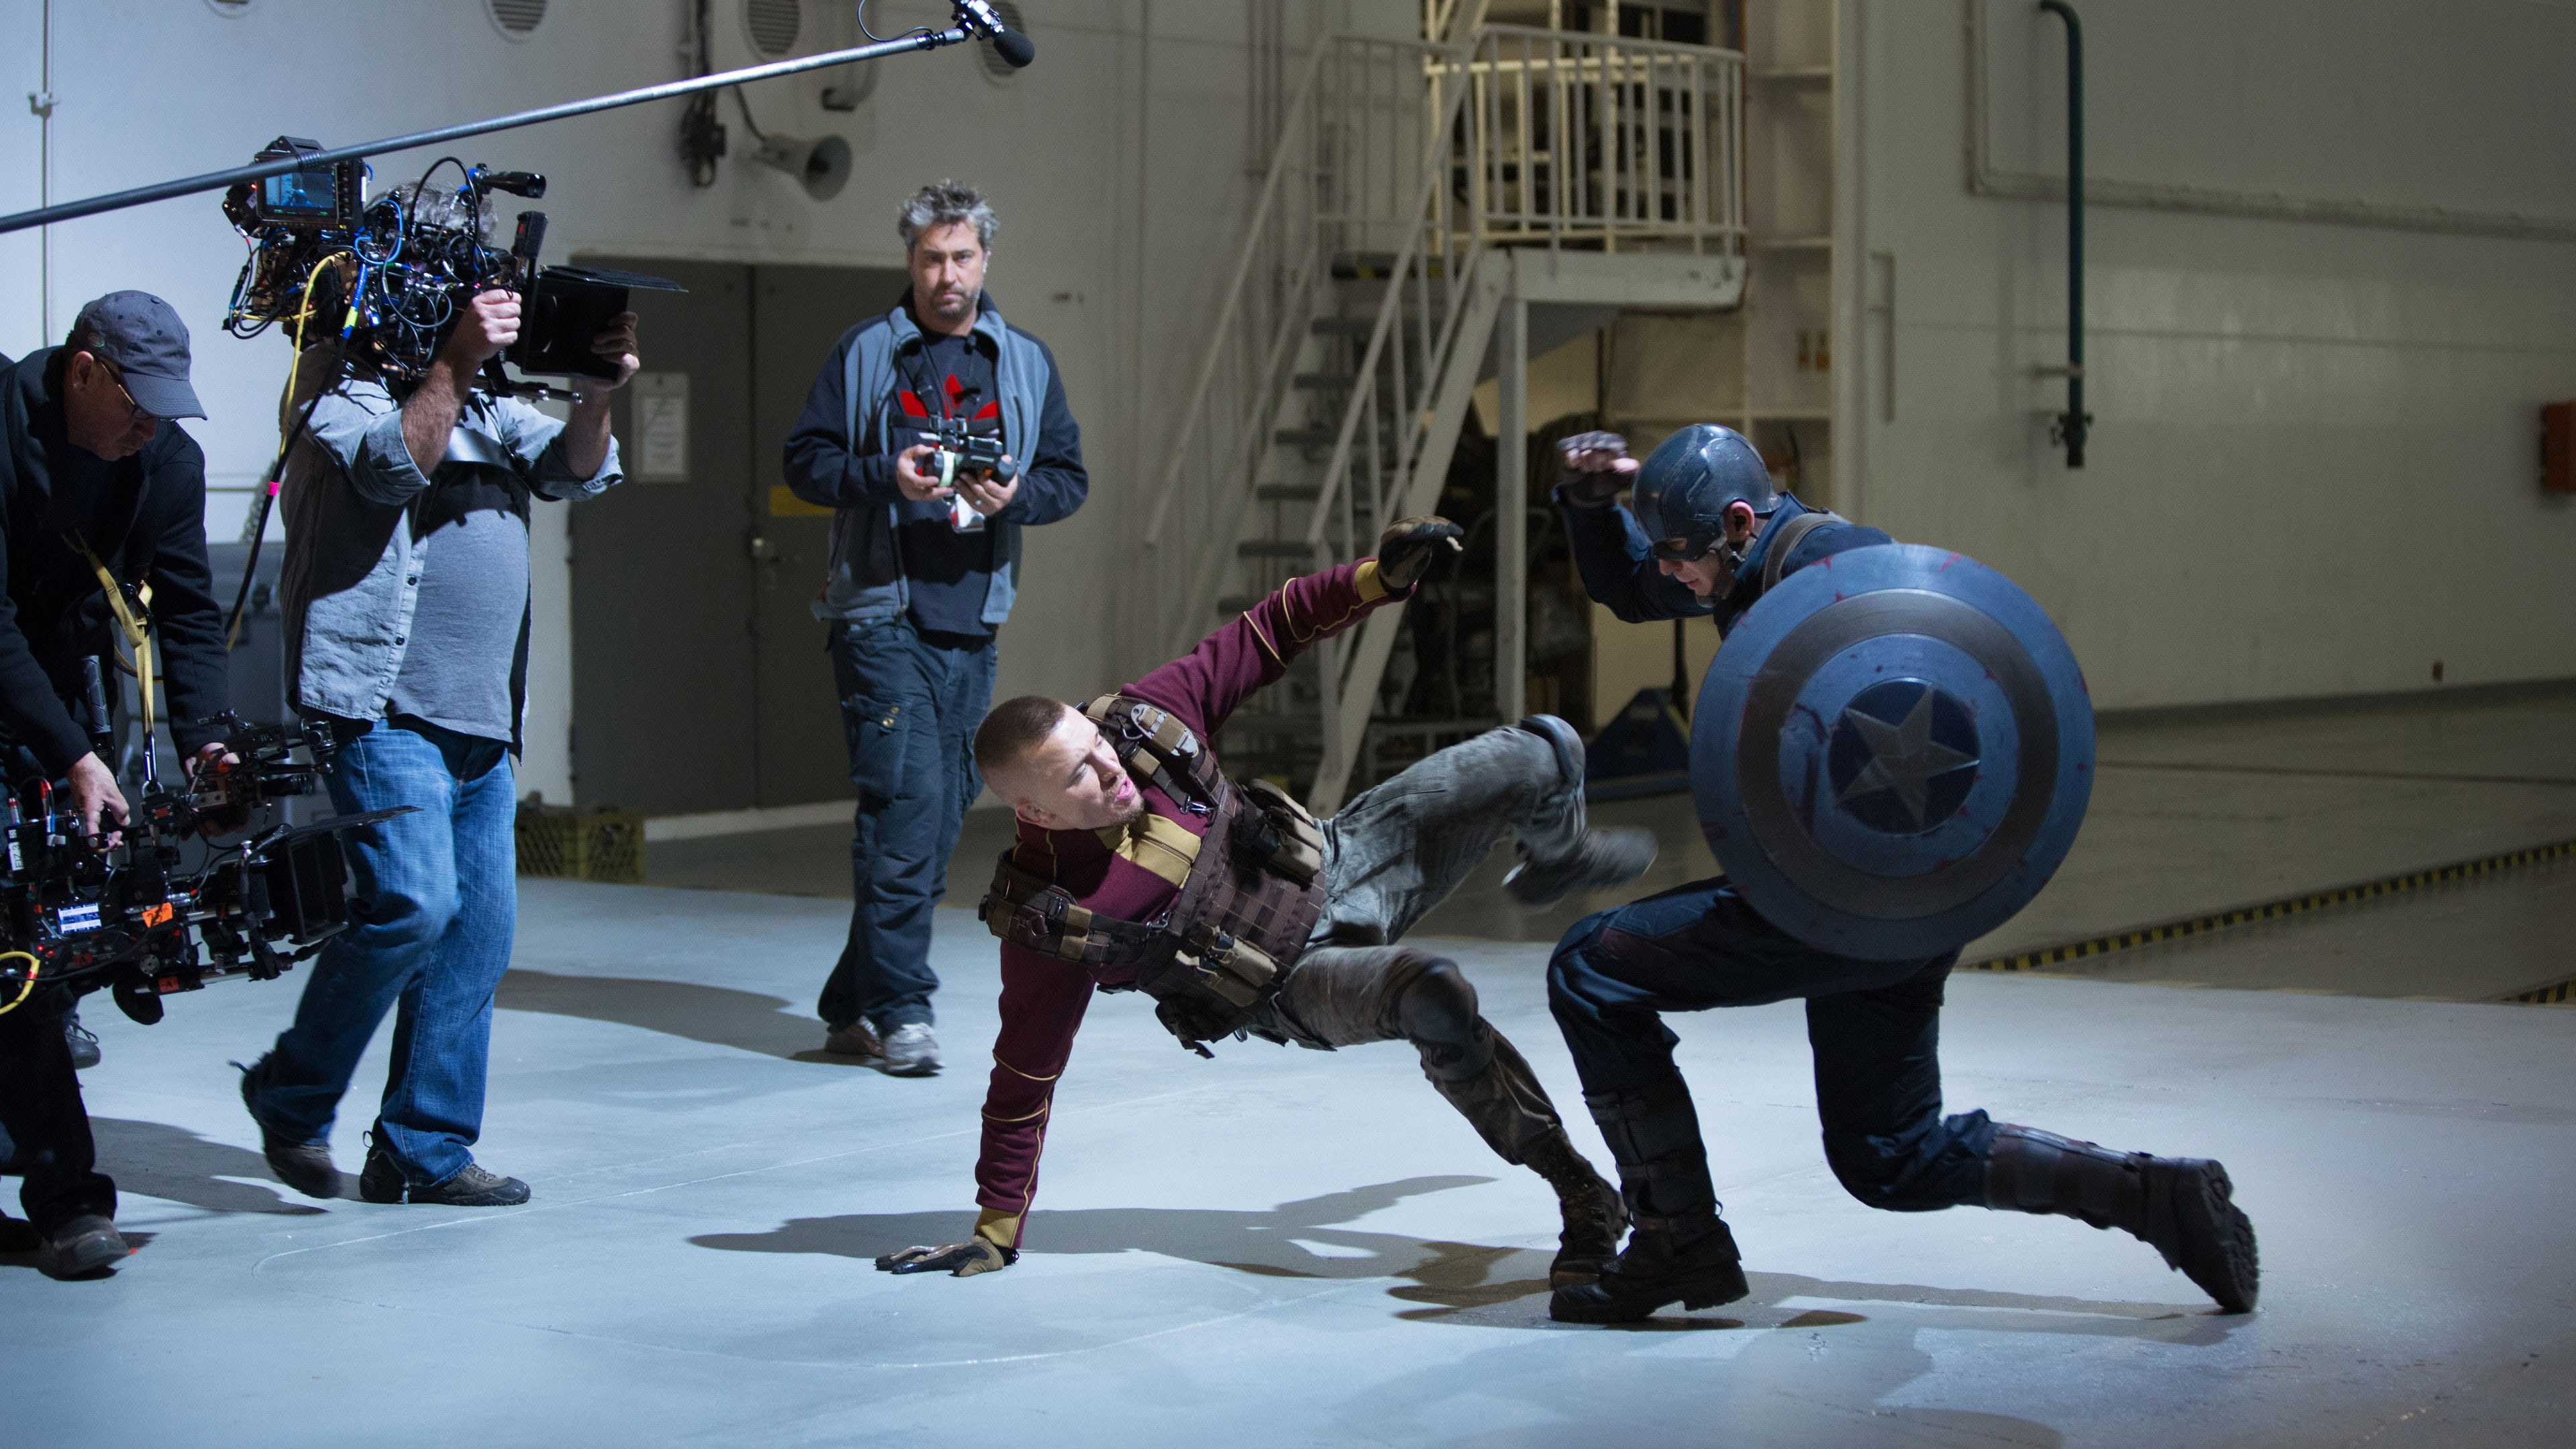 Actors Chris Evans (Captain America) and Georges St-Pierre (Georges Batroc) behind-the-scenes fighting in Captain America: The Winter Soldier.